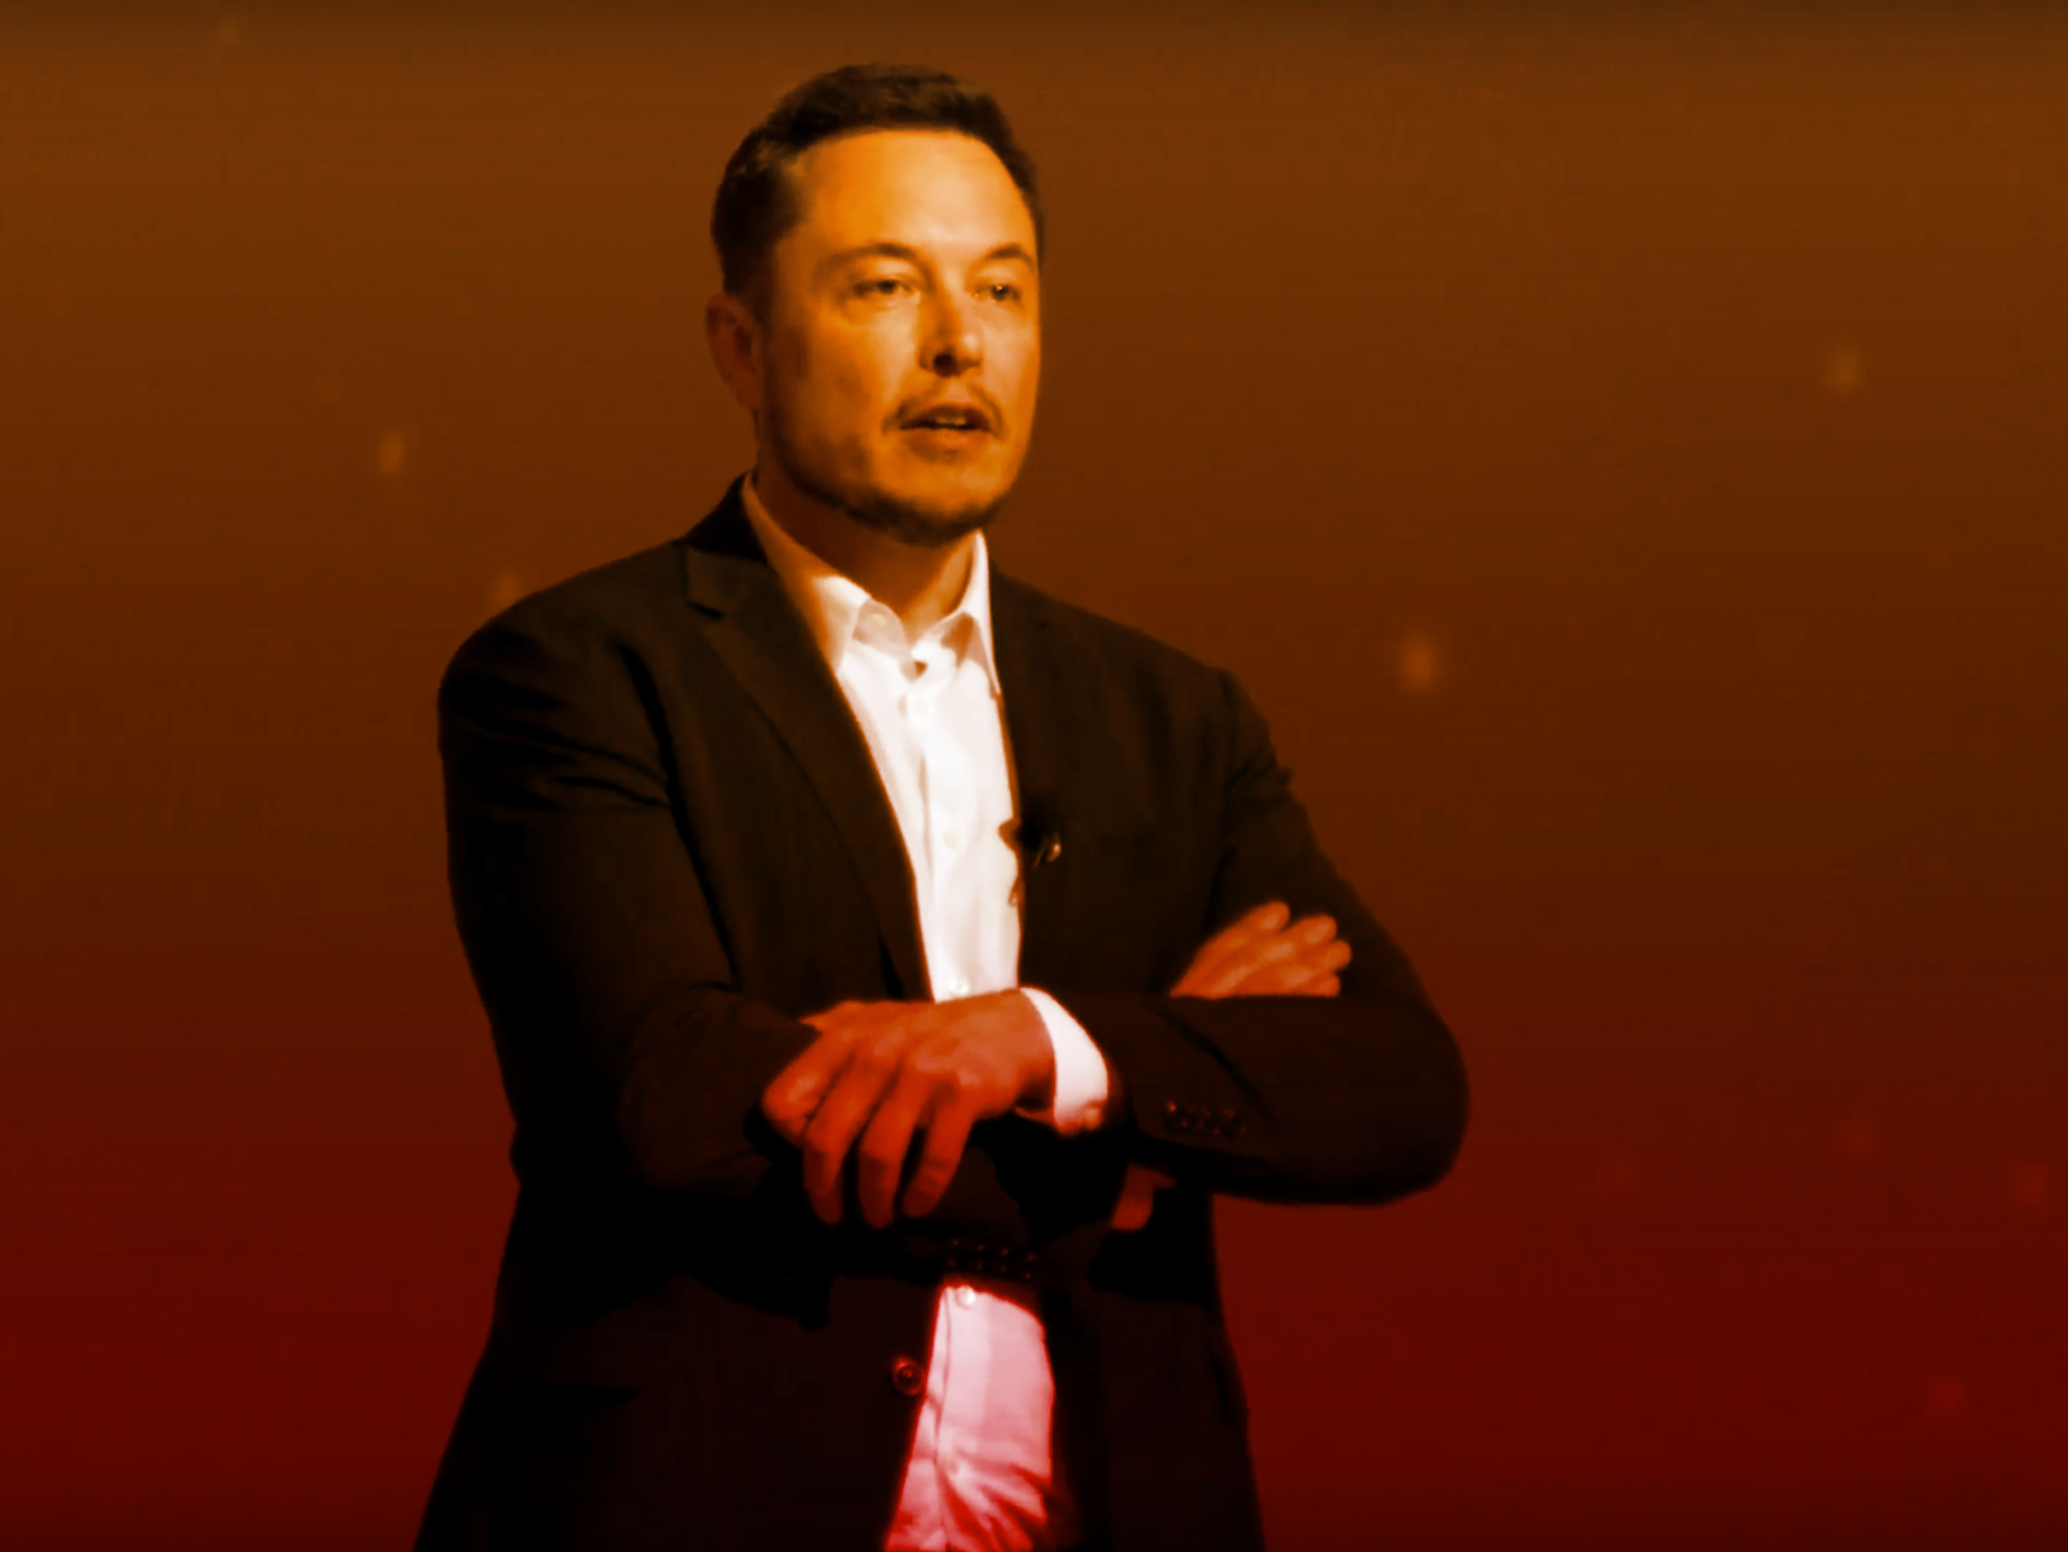 Elon Musk Would Like to Visit Mars, Needs to Plan in Case He Dies